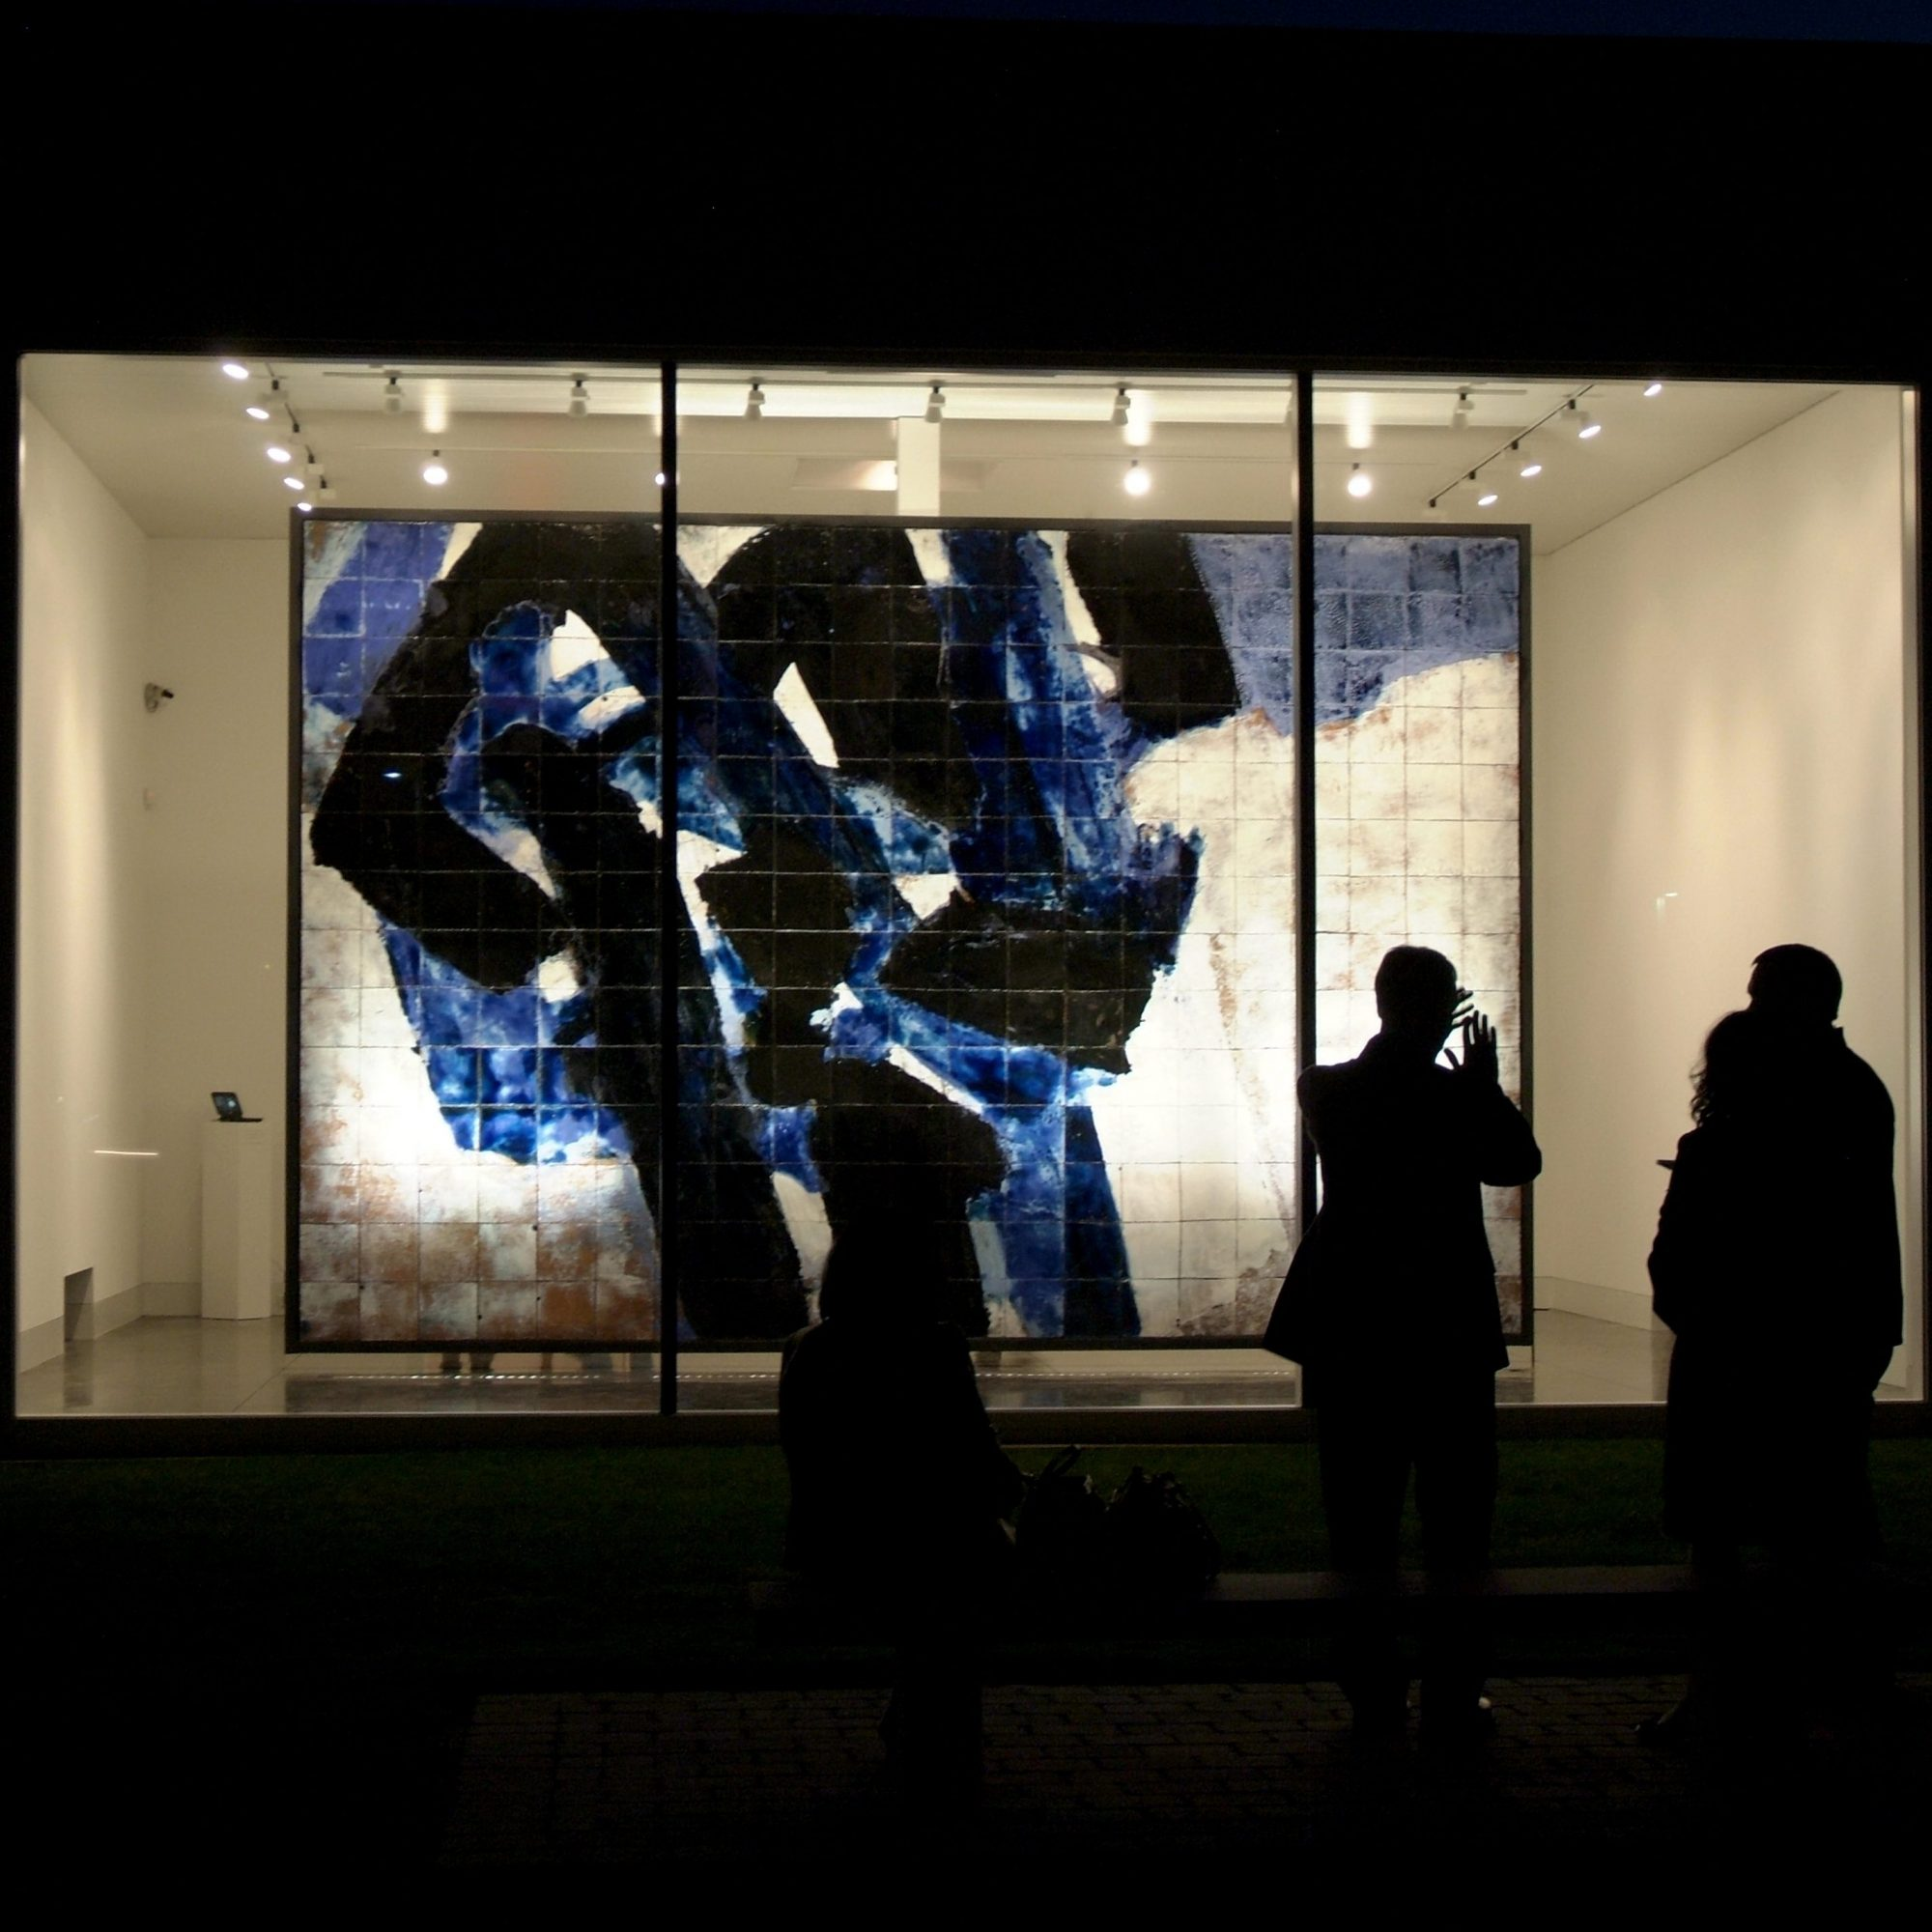 night image of a ceramic installation